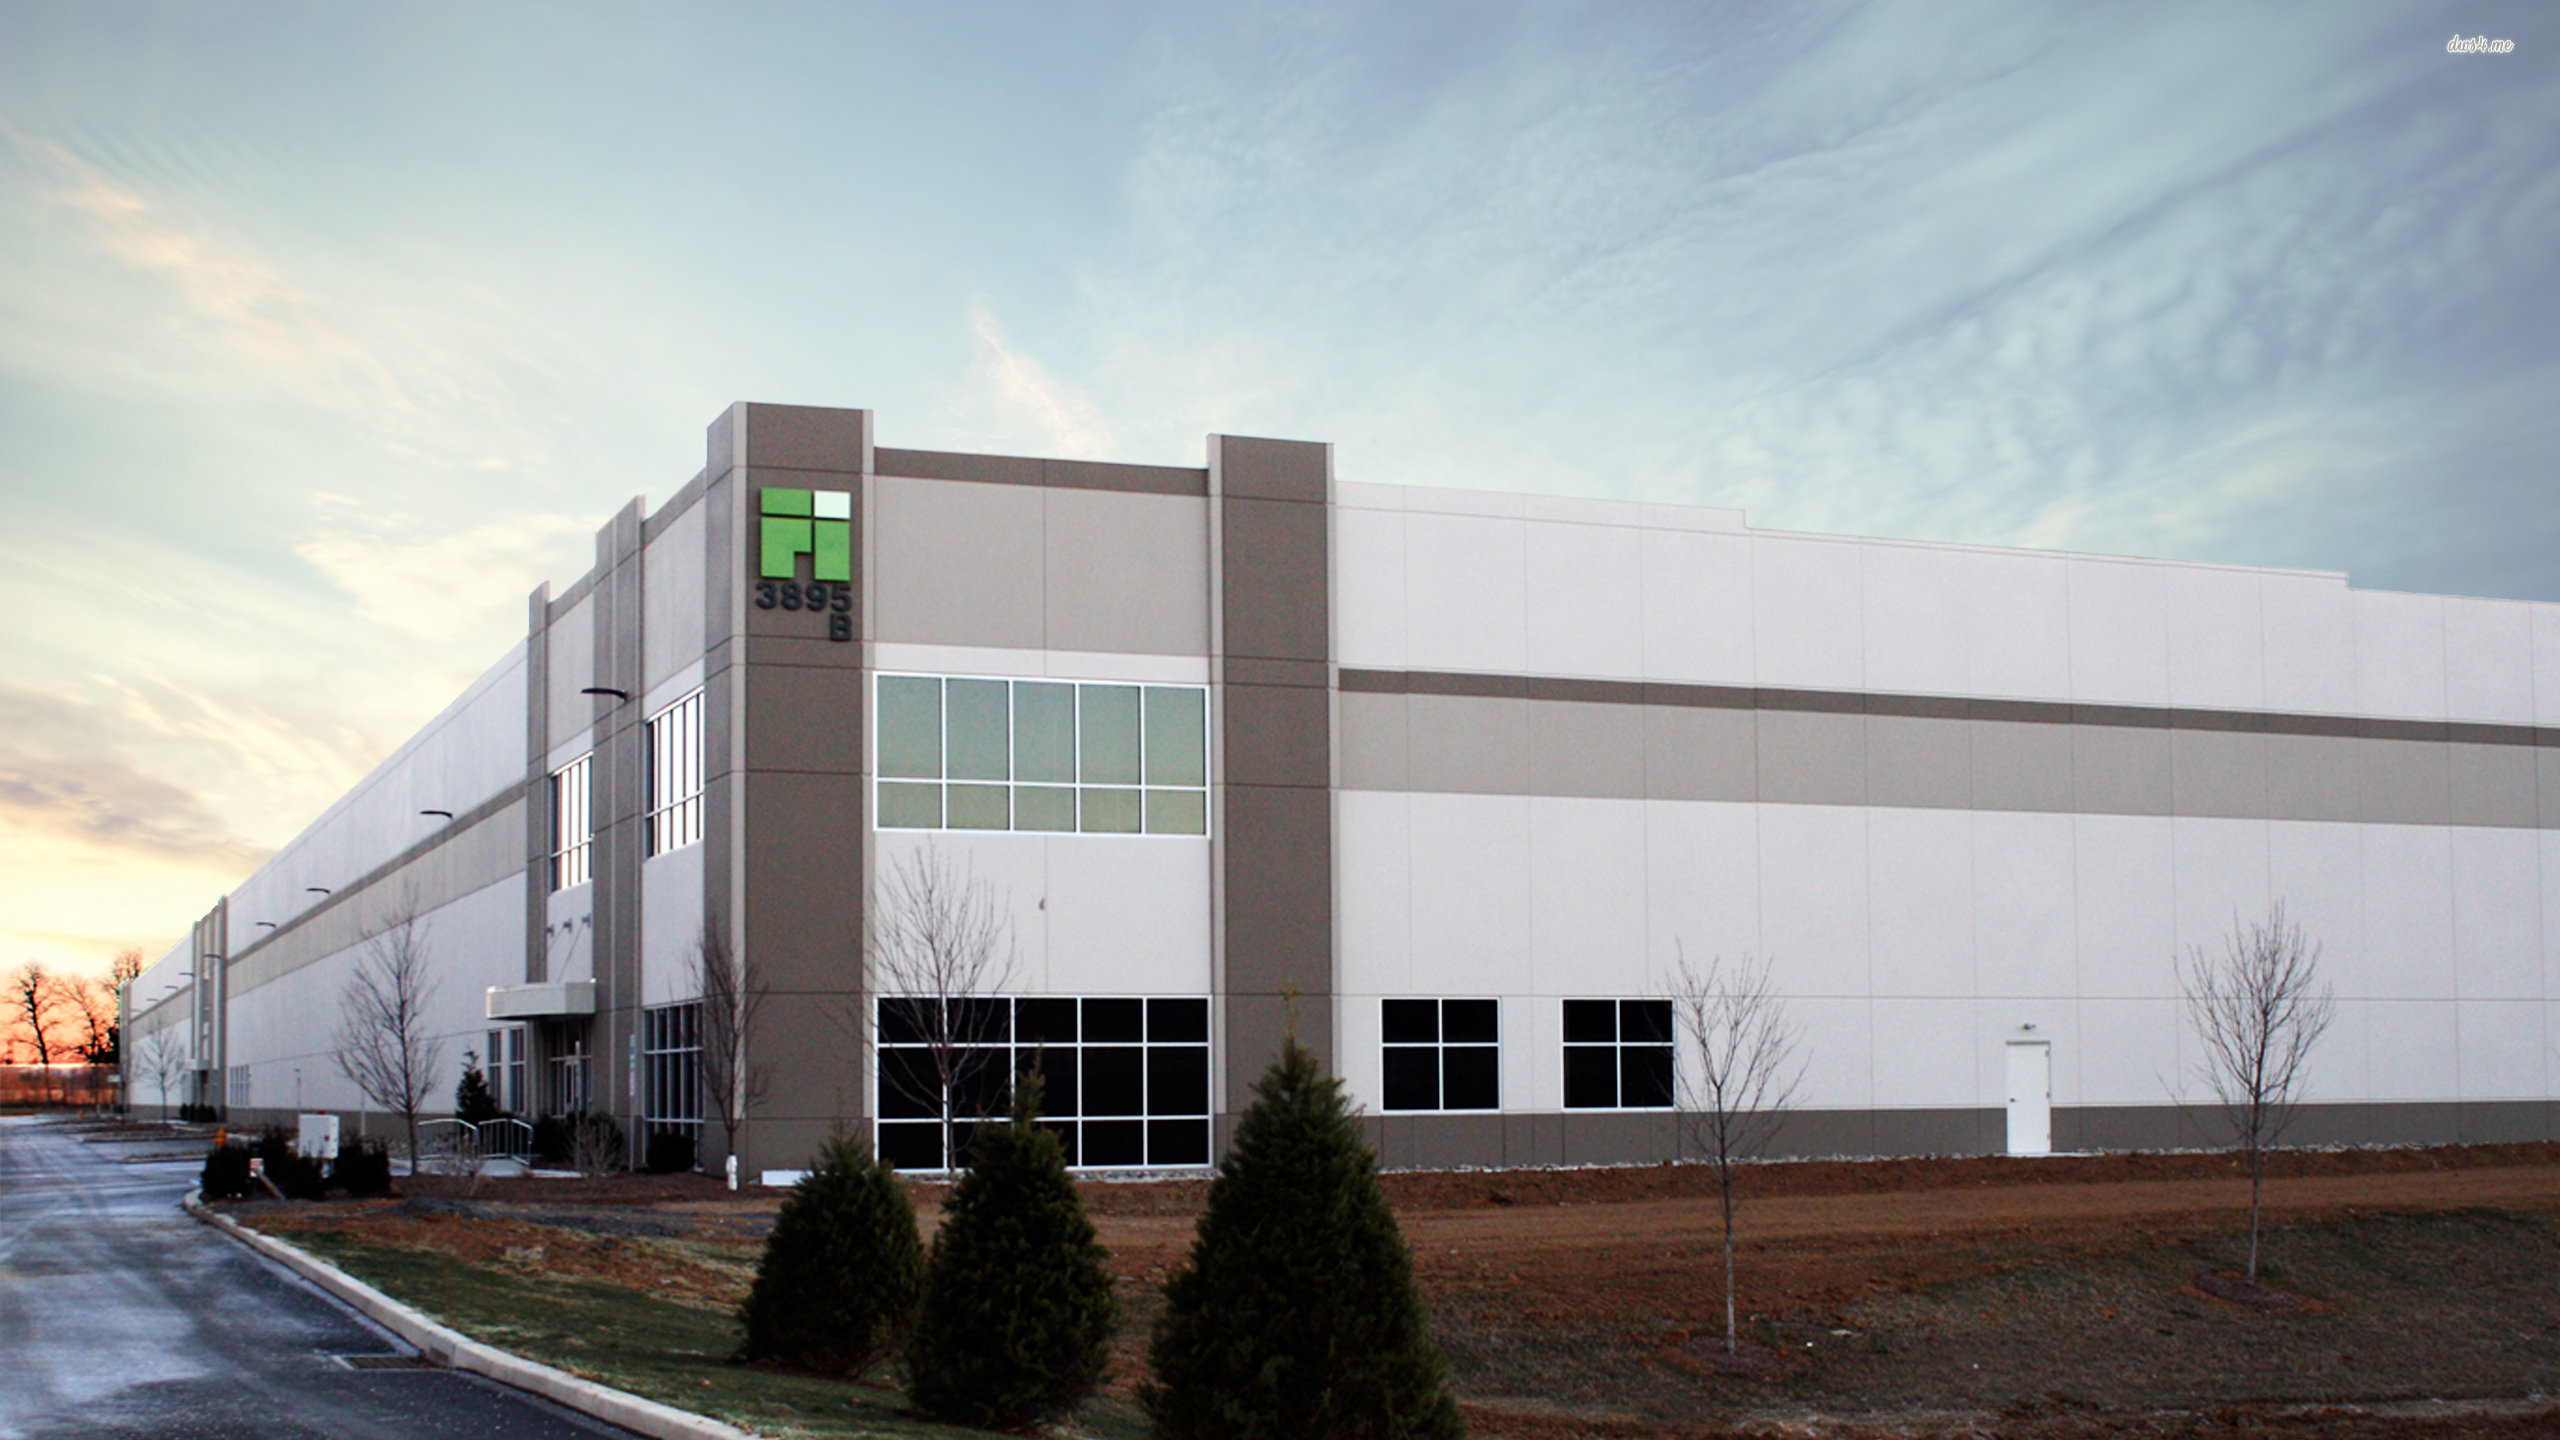 Central Garden U0026 Pet Company Is Leasing A 243,360 Square Foot Facility At  The First